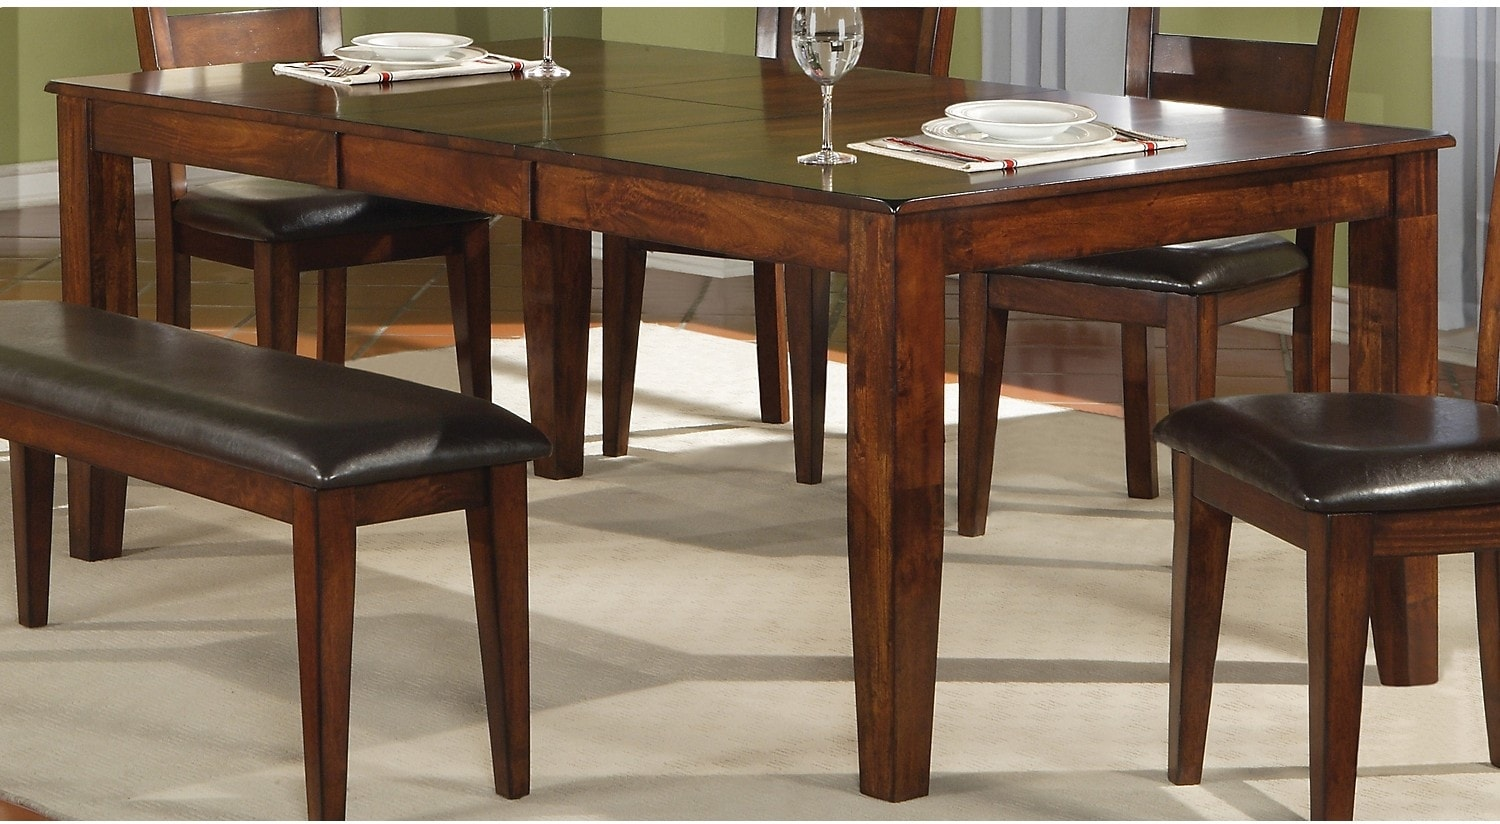 Dining Room Furniture - Dakota Light Dining Table